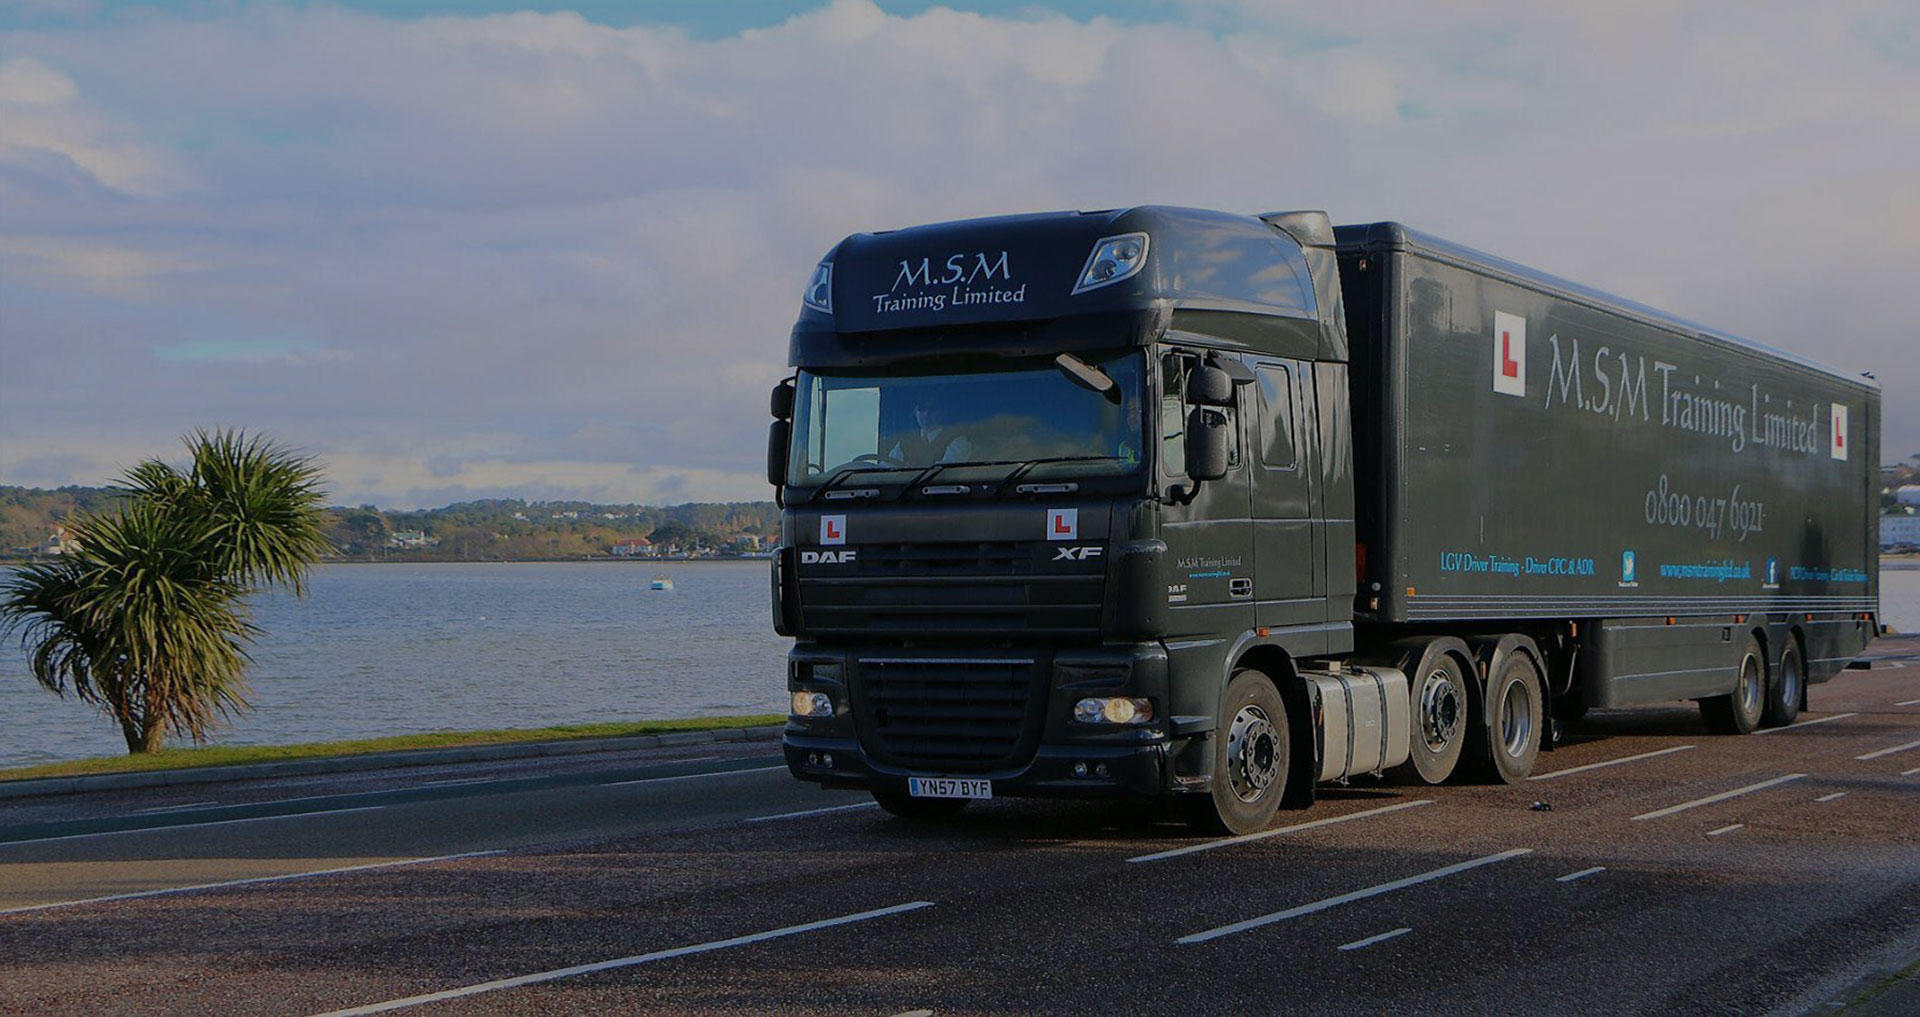 DVSA Approved HGV and LGV Courses in Dorset and Hampshire, MSM Training